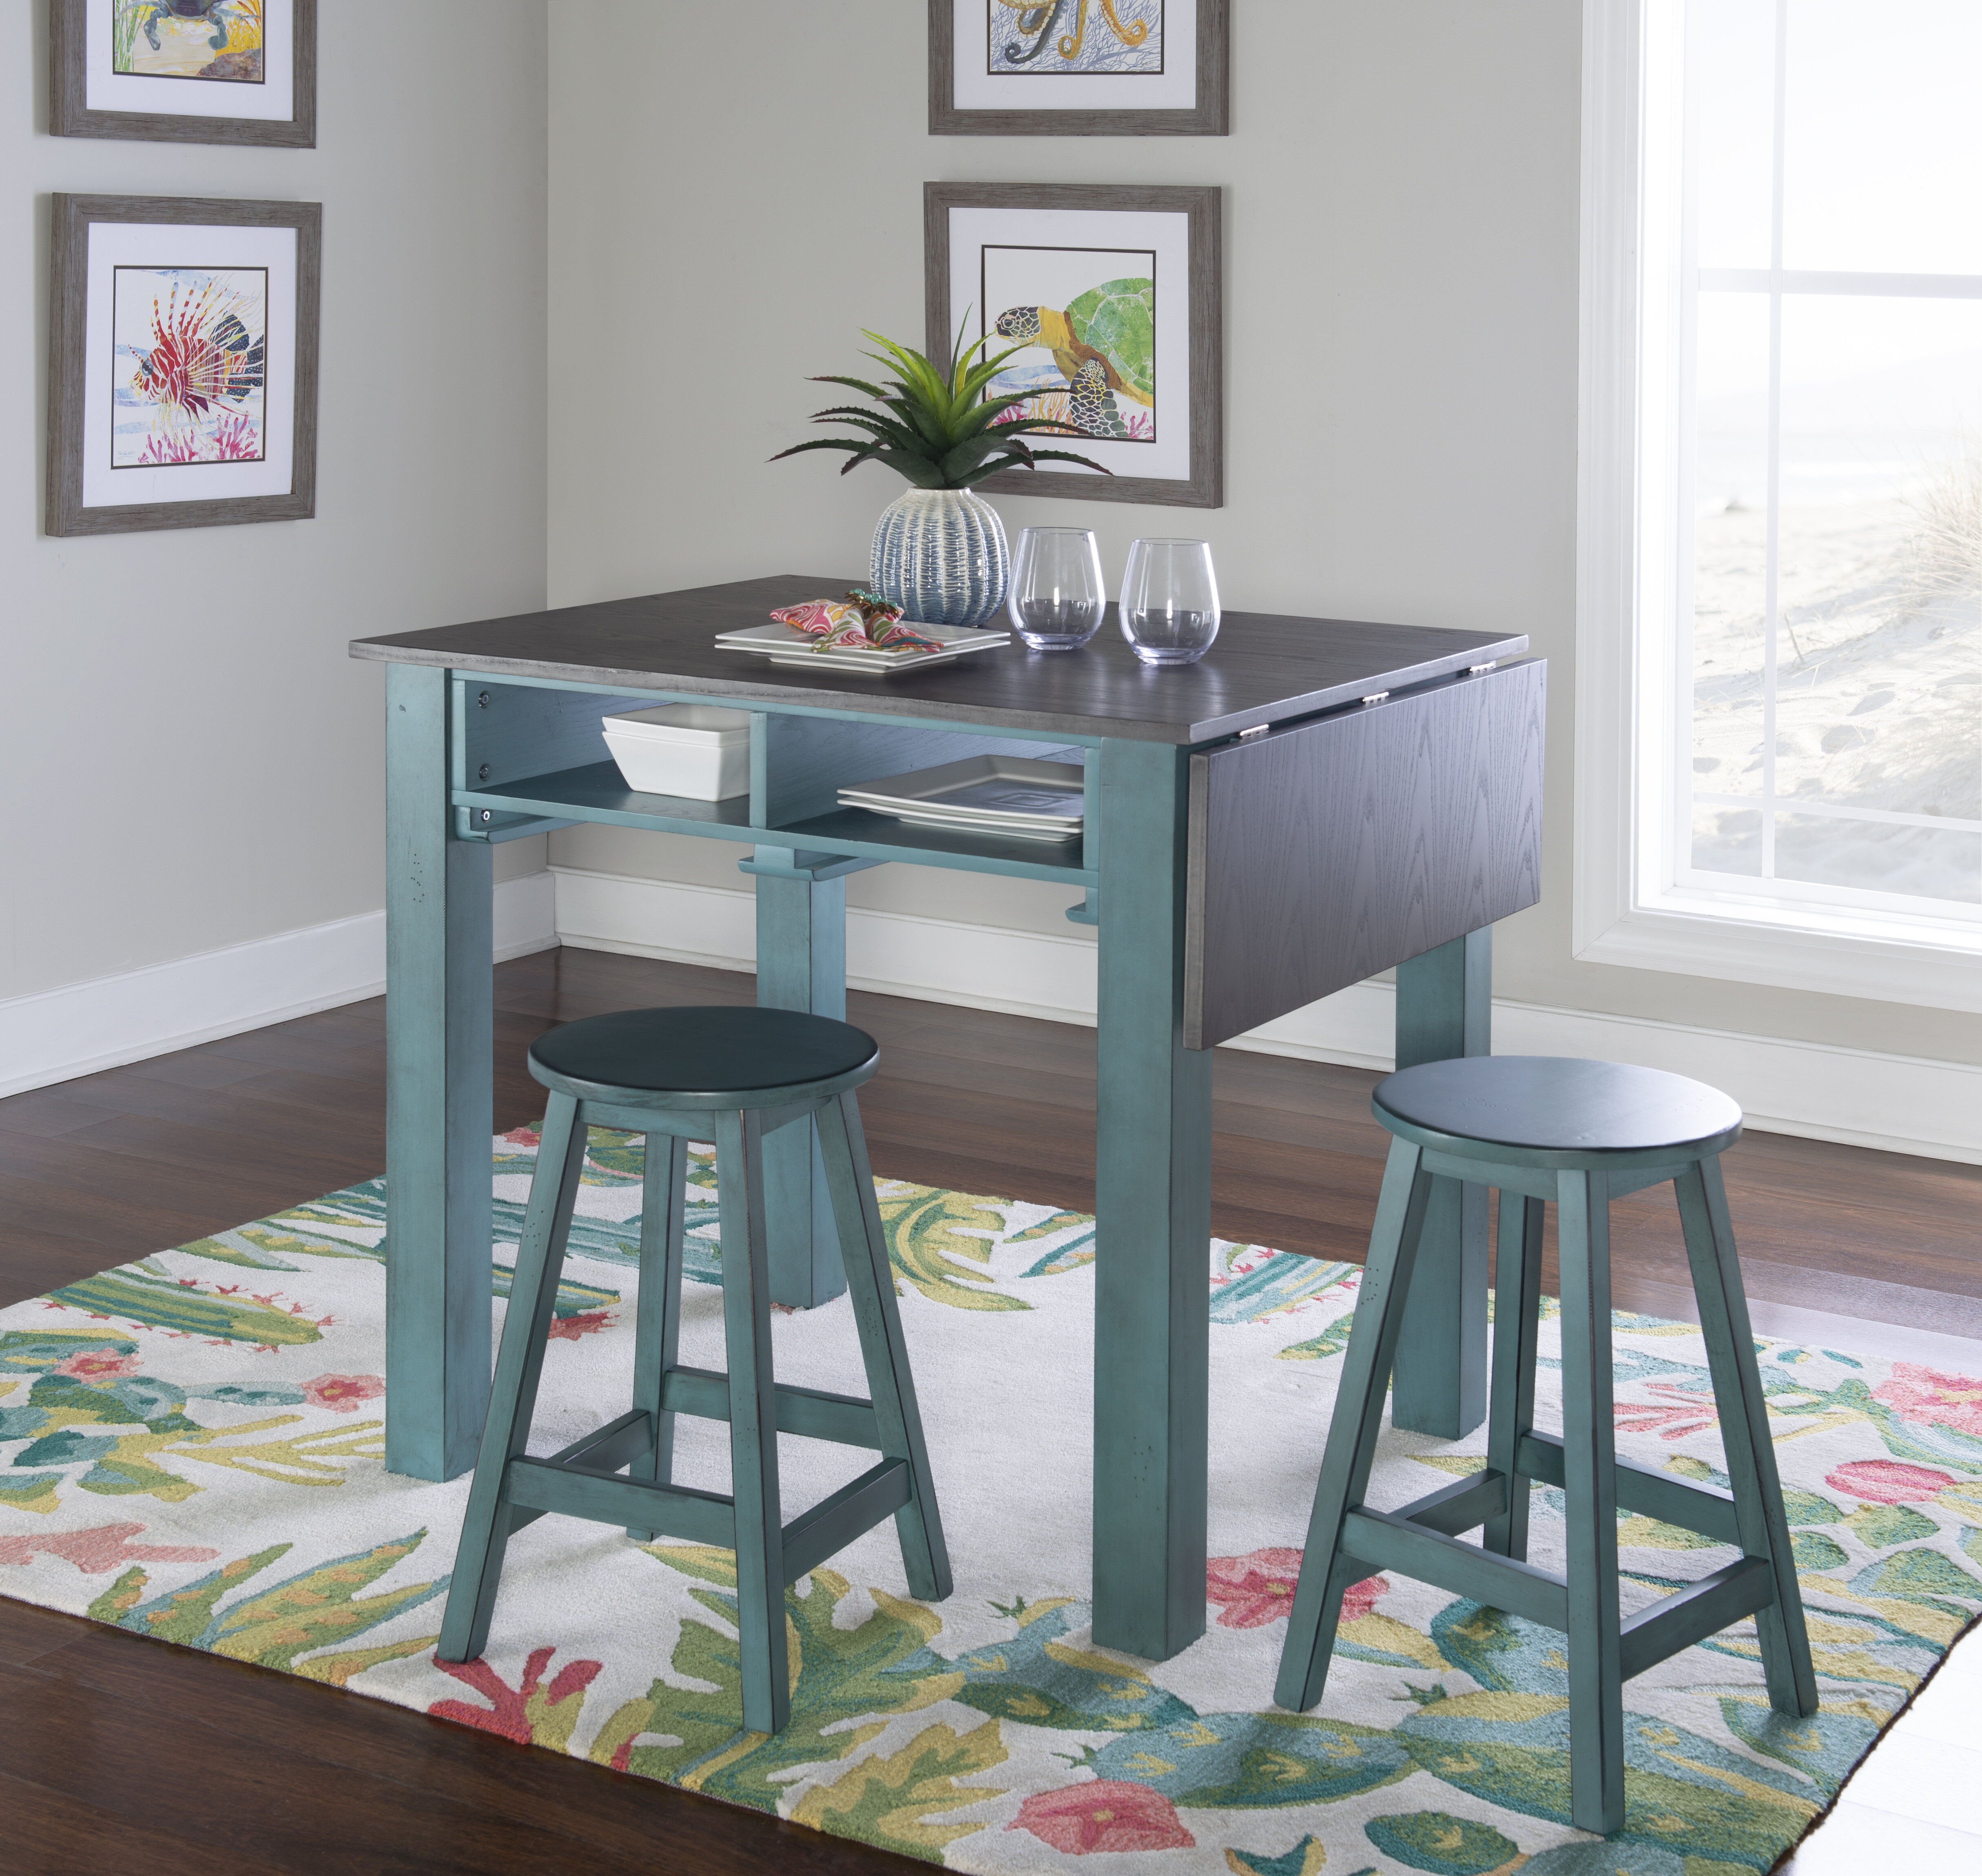 2 Stools Kitchen Islands Carts You Ll Love In 2020 Wayfair